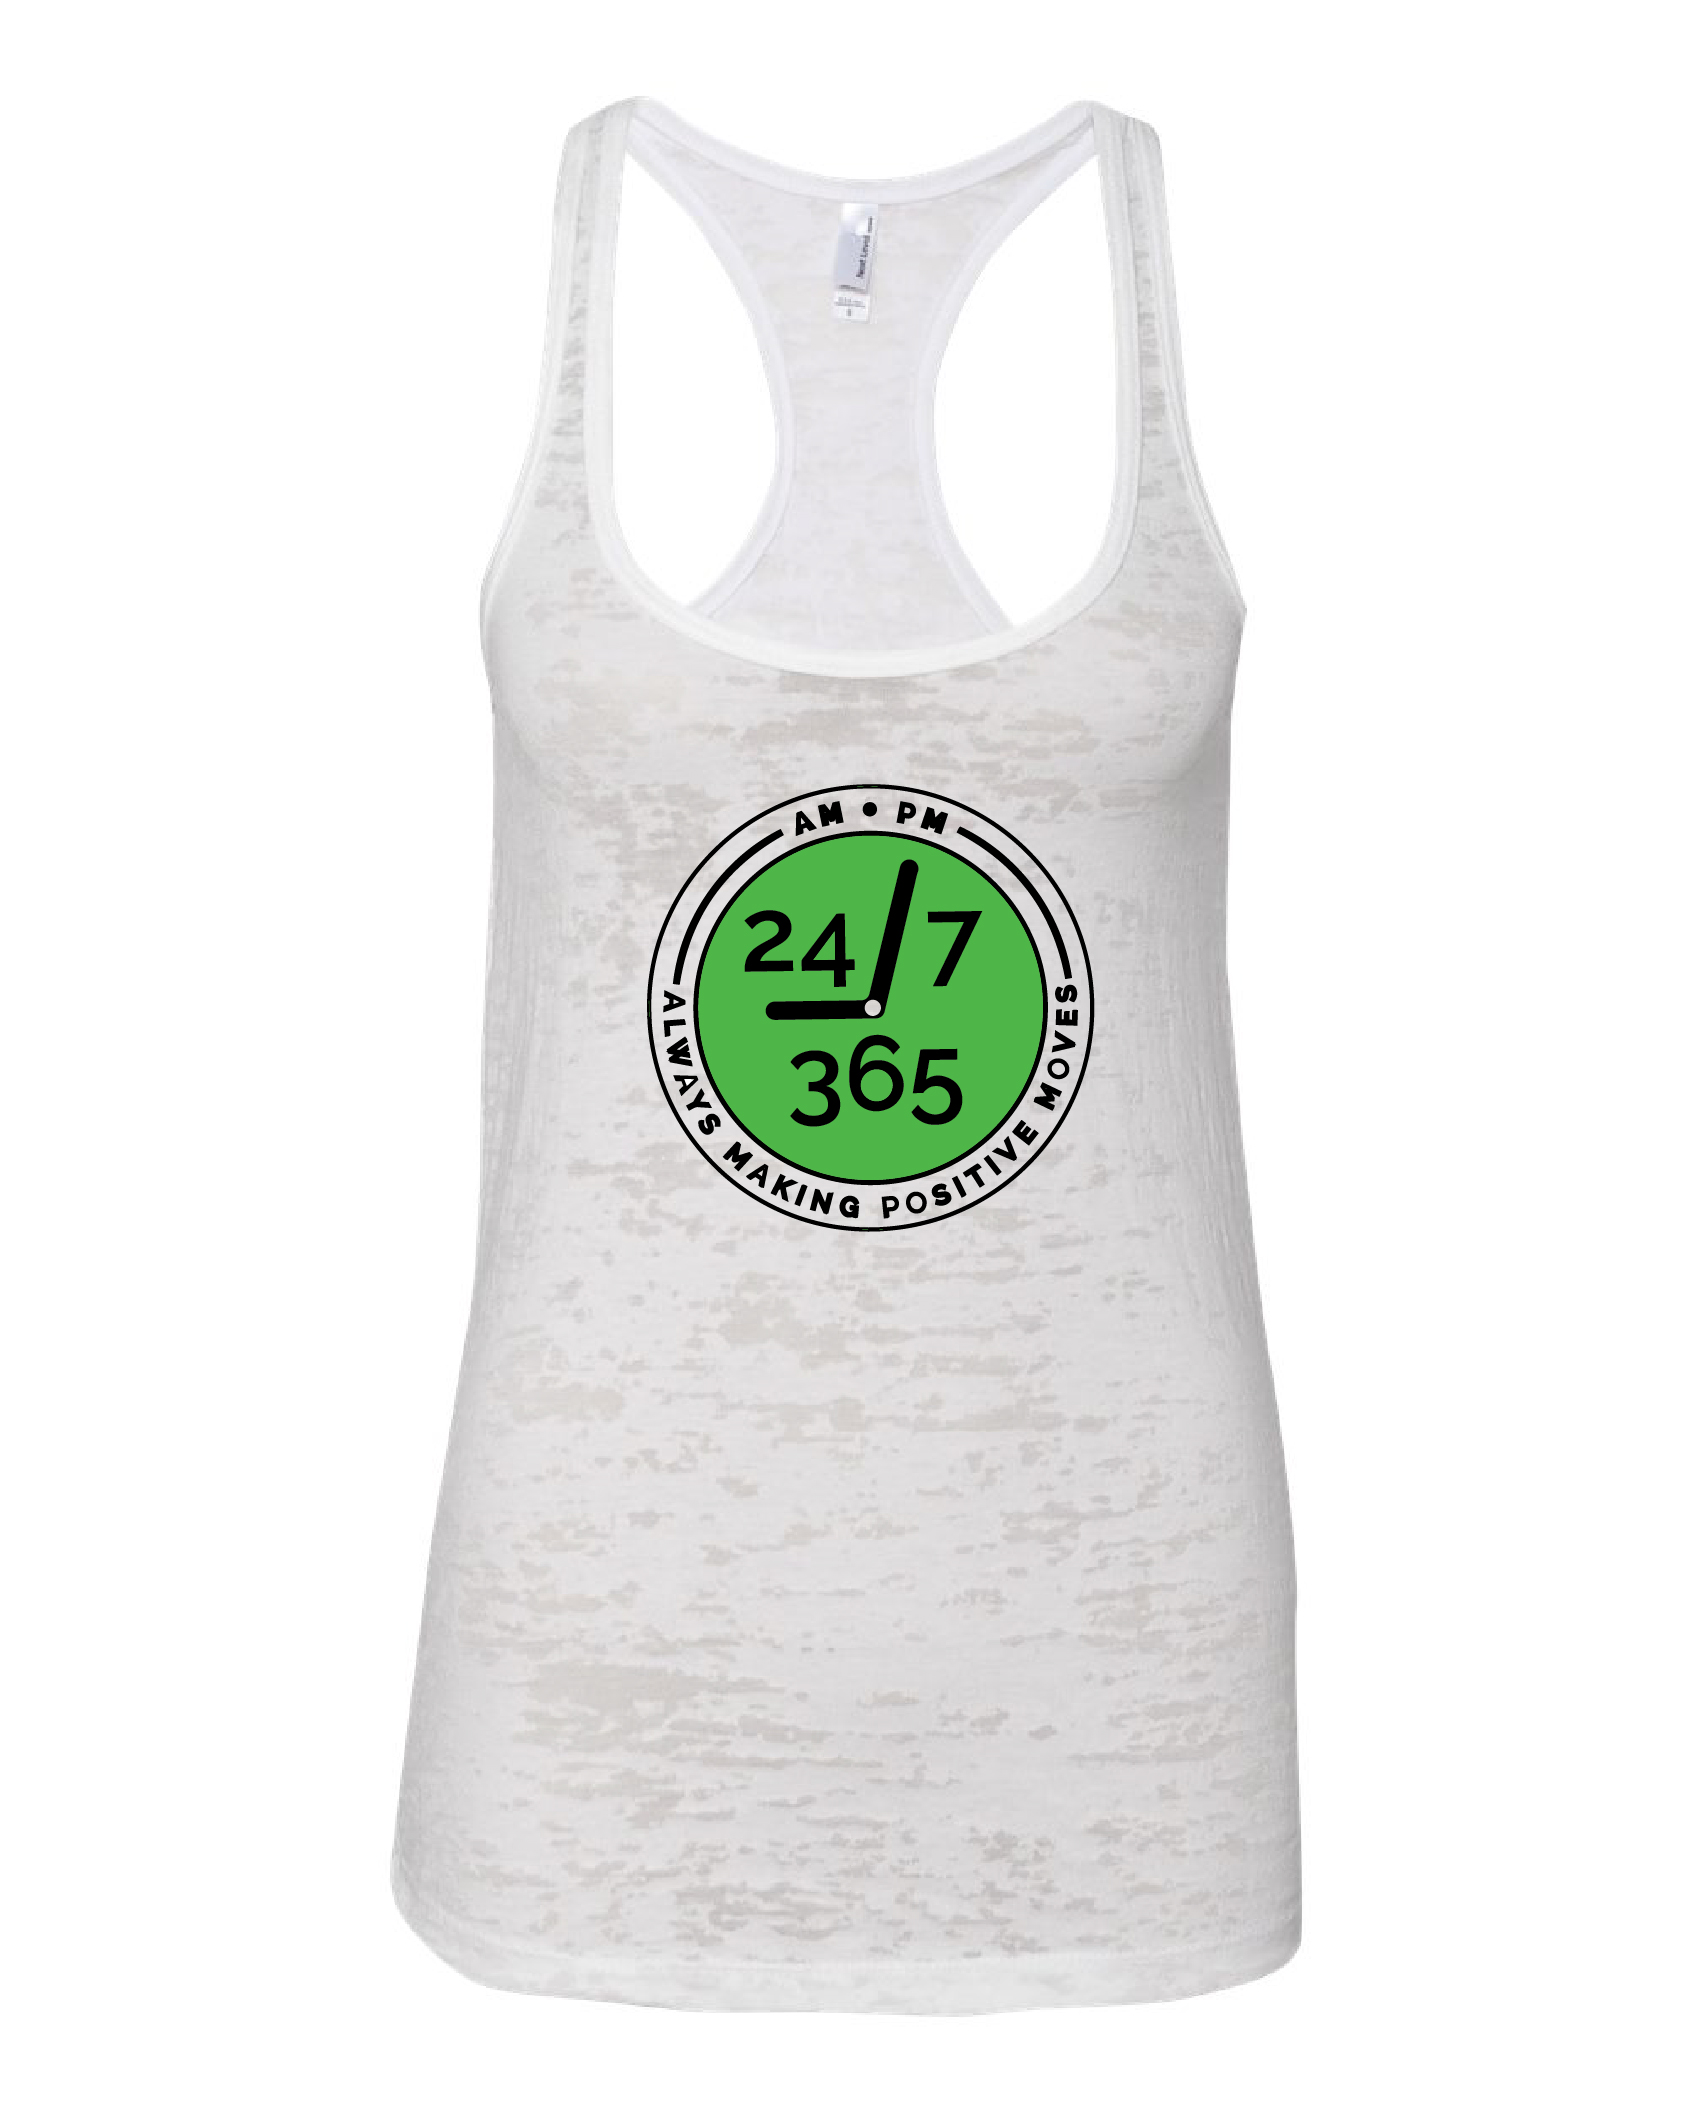 Women's Burnout Racerback Tank